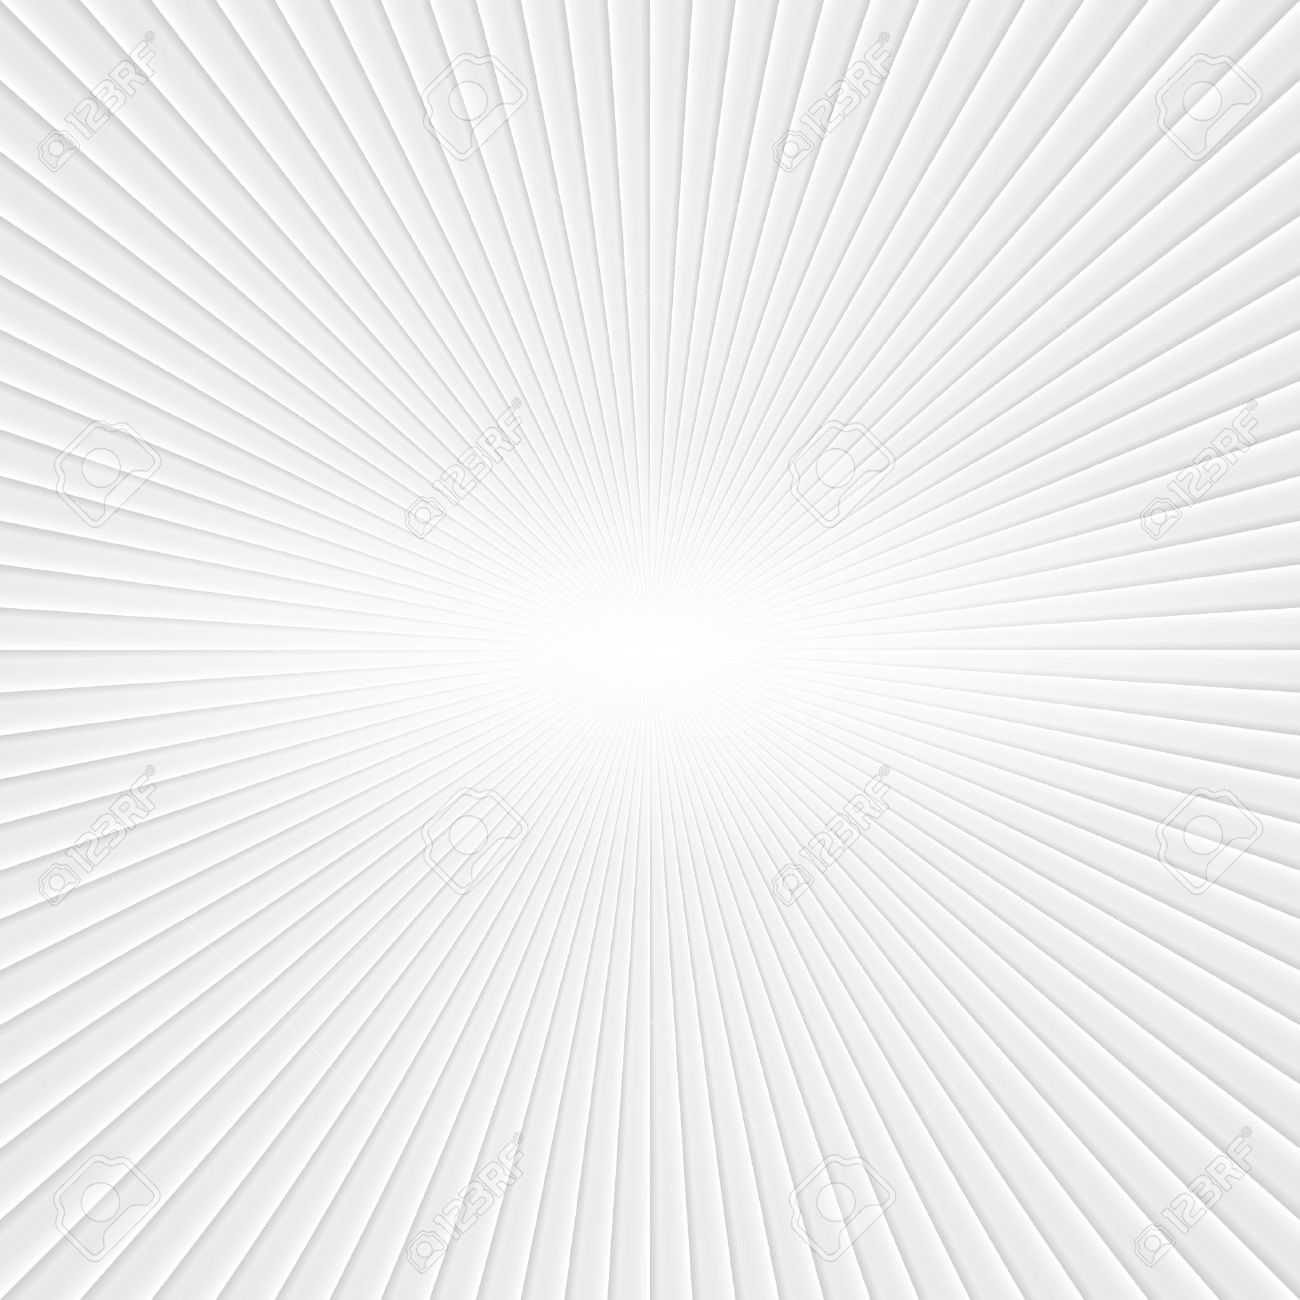 3D White Rays. Abstract Vector Background - 44661600